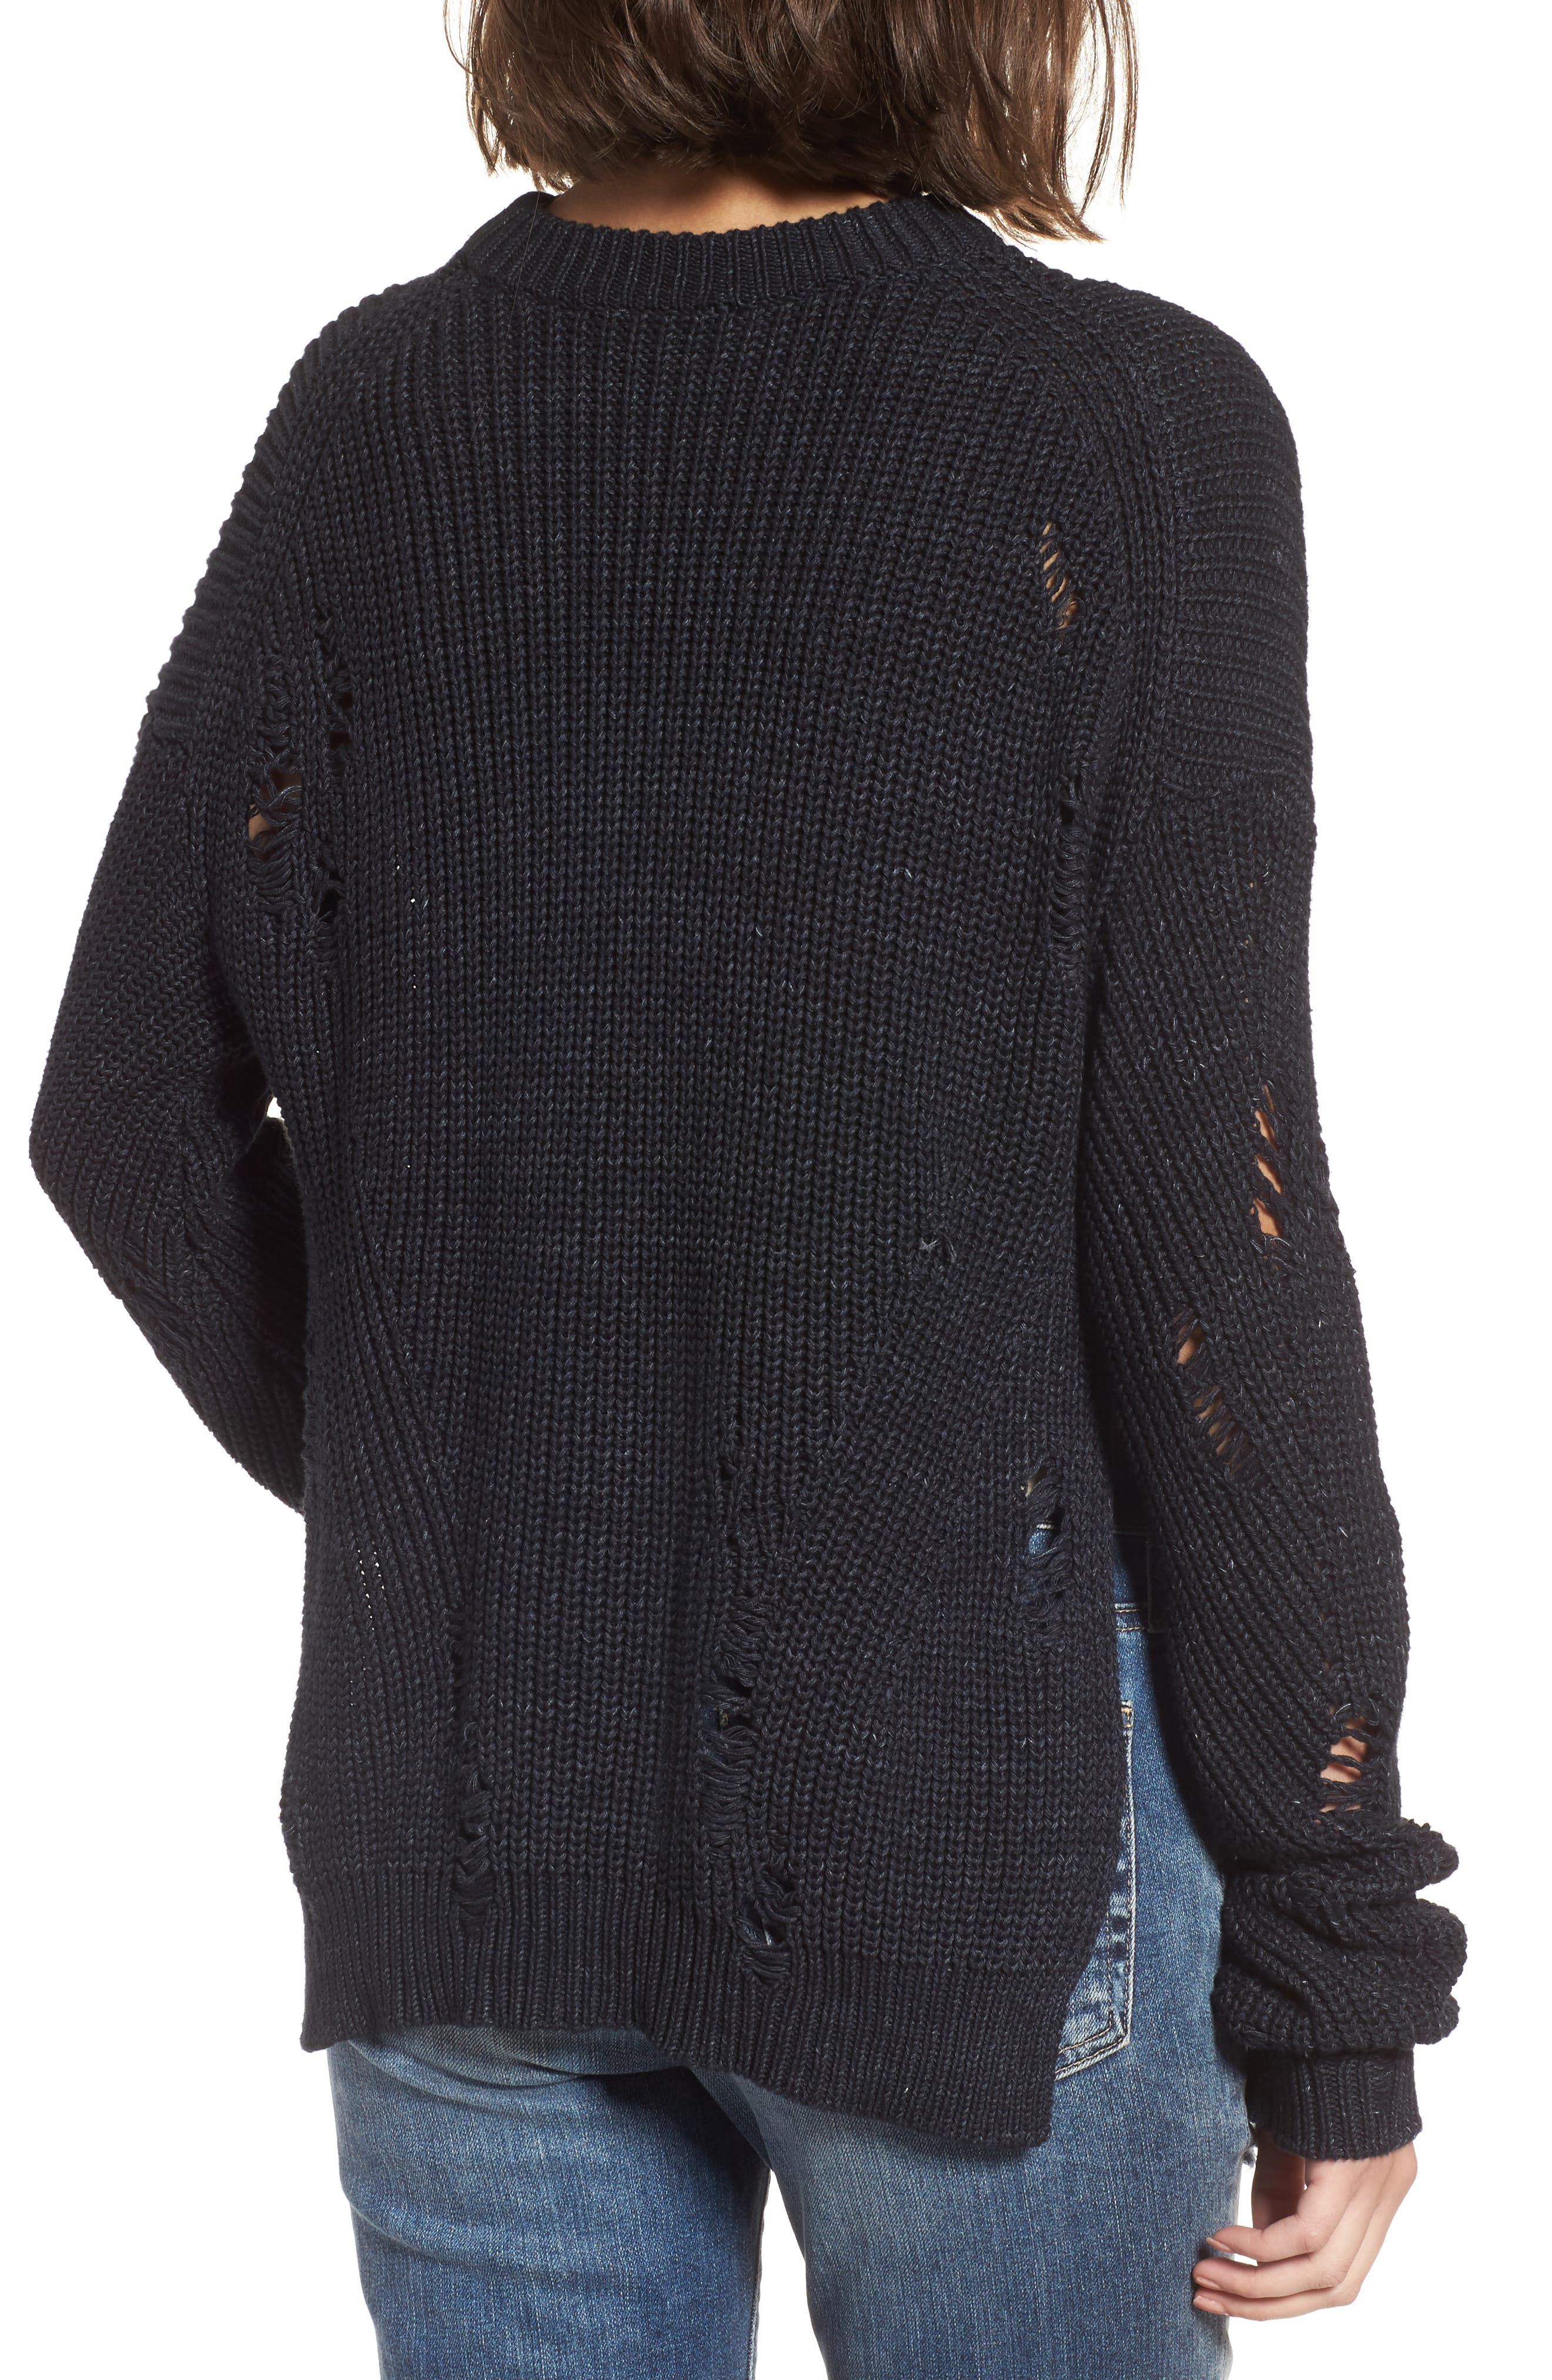 Finn Distressed Sweater,                             Alternate thumbnail 2, color,                             SPECKLED MIDNIGHT SKY